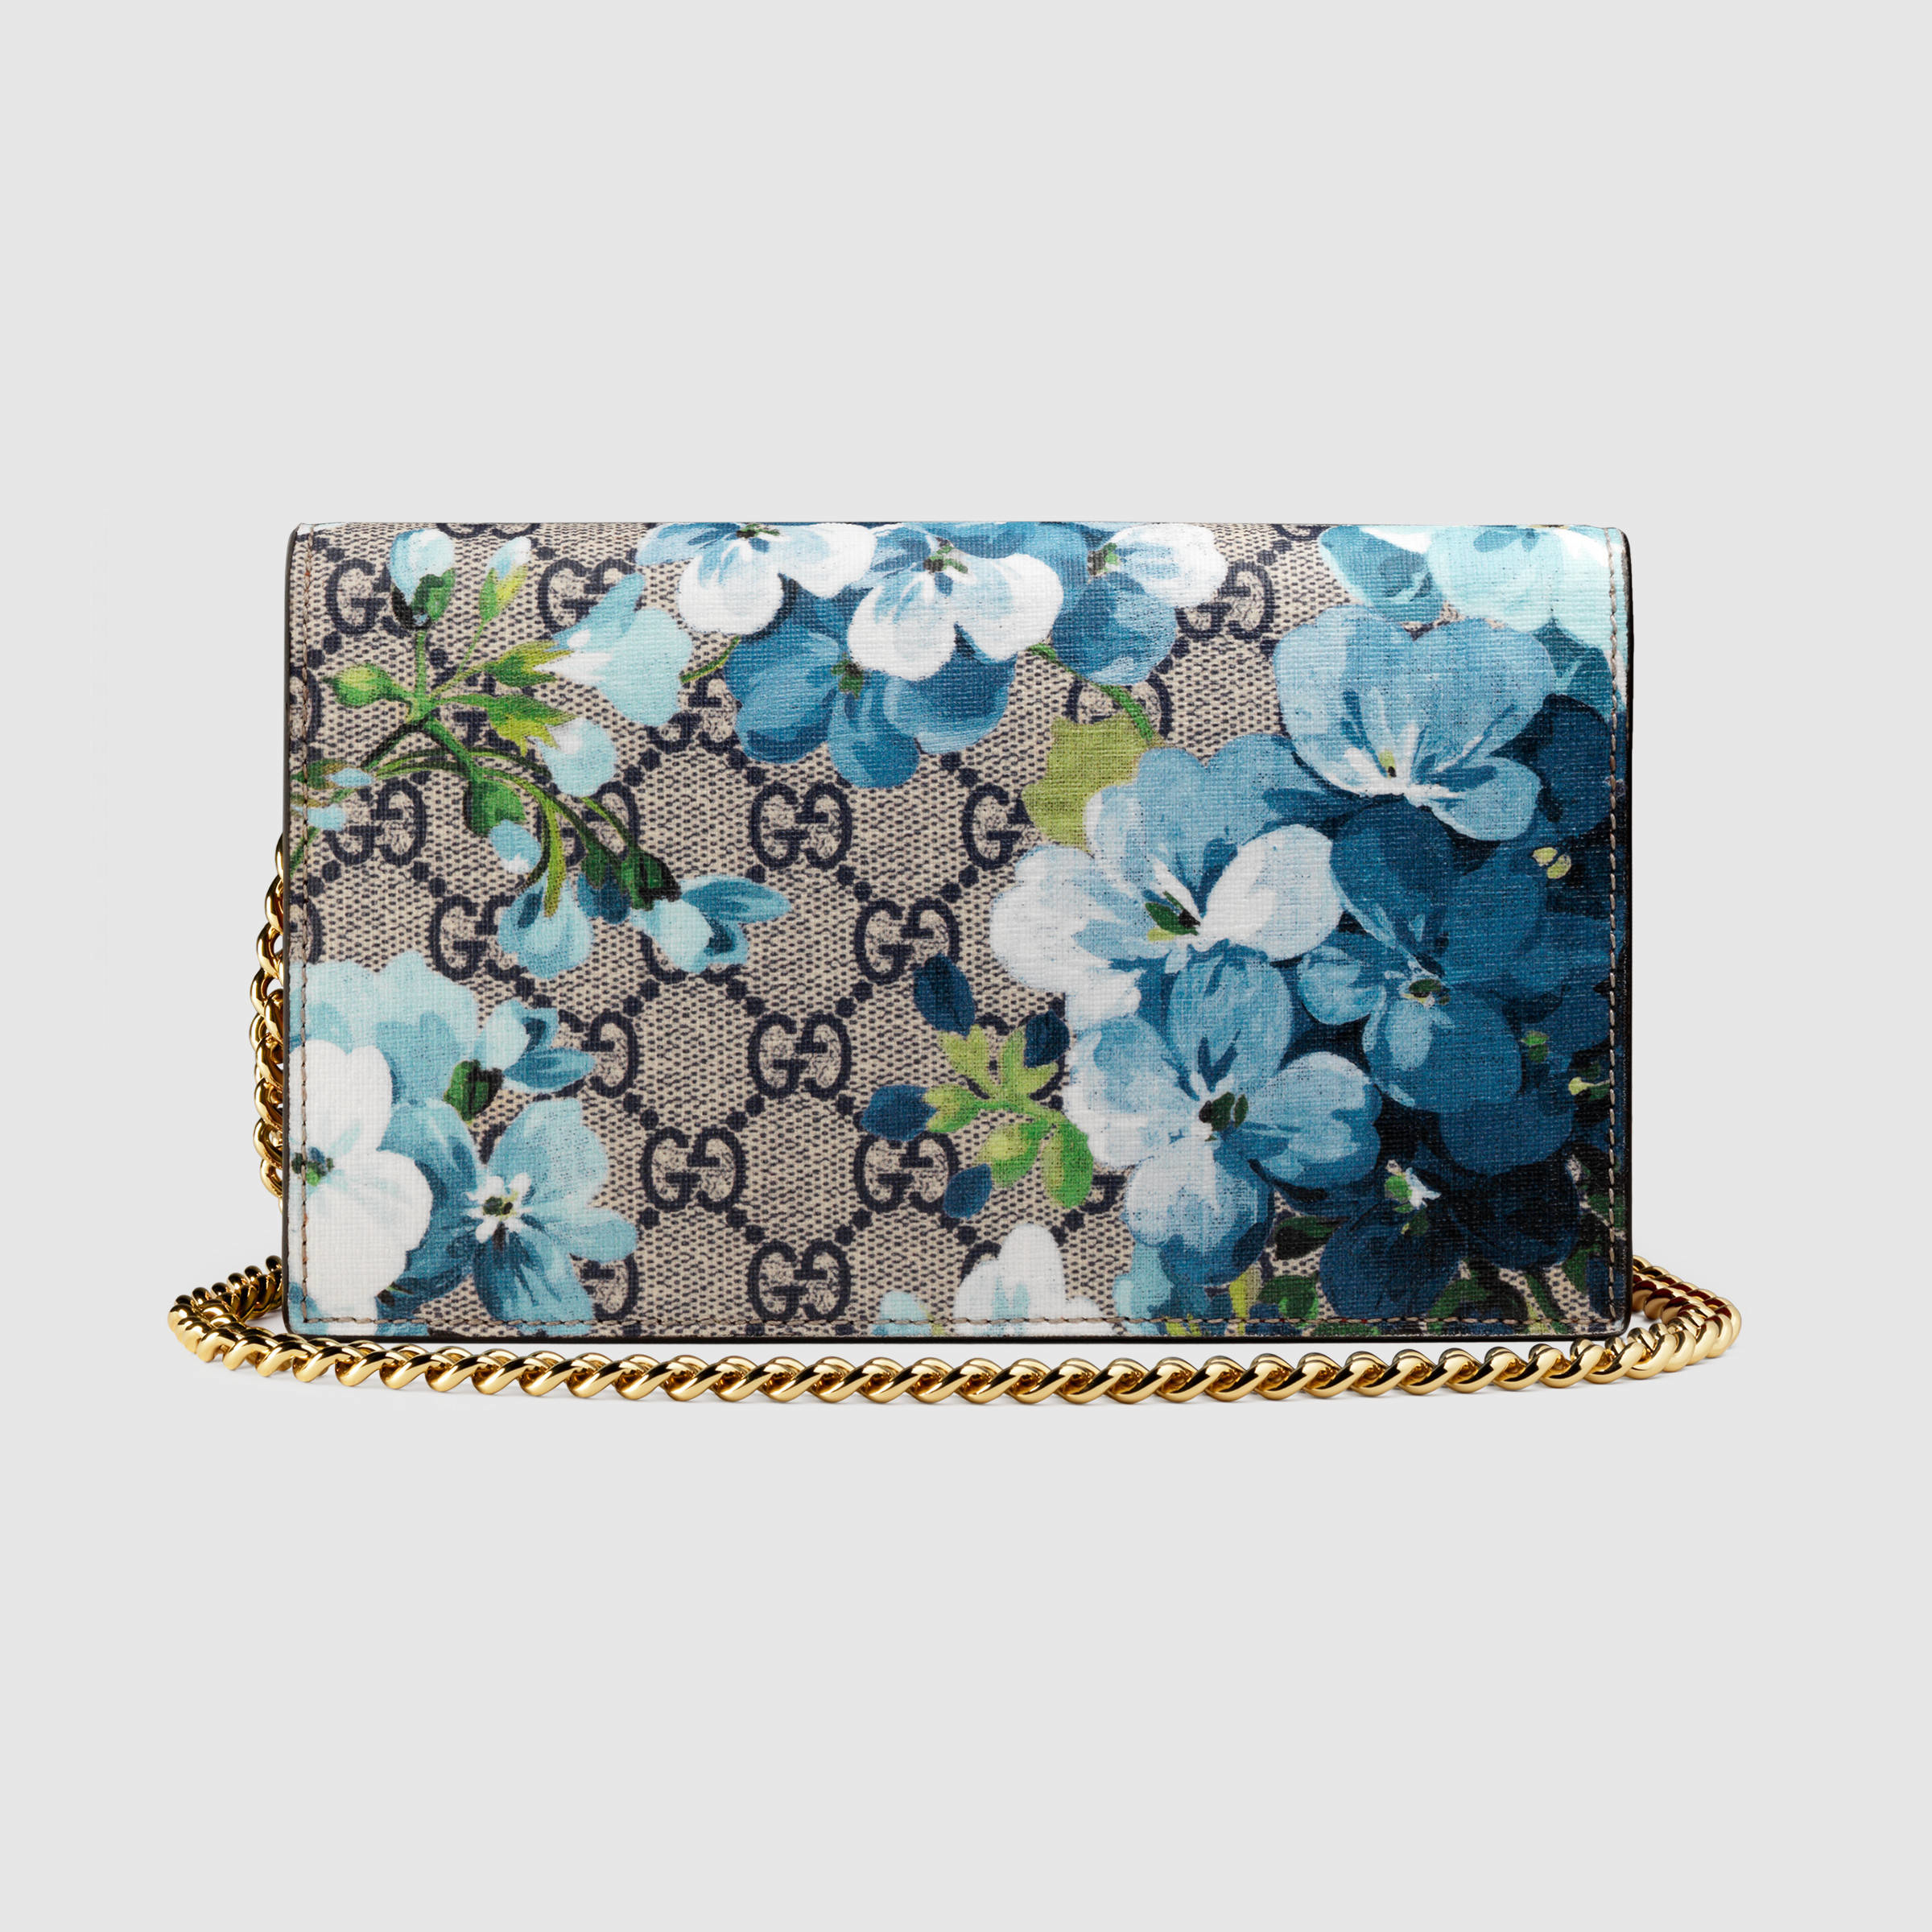 64805723632 Gucci Gg Blooms Wallet On Chain - Image Of Wallet